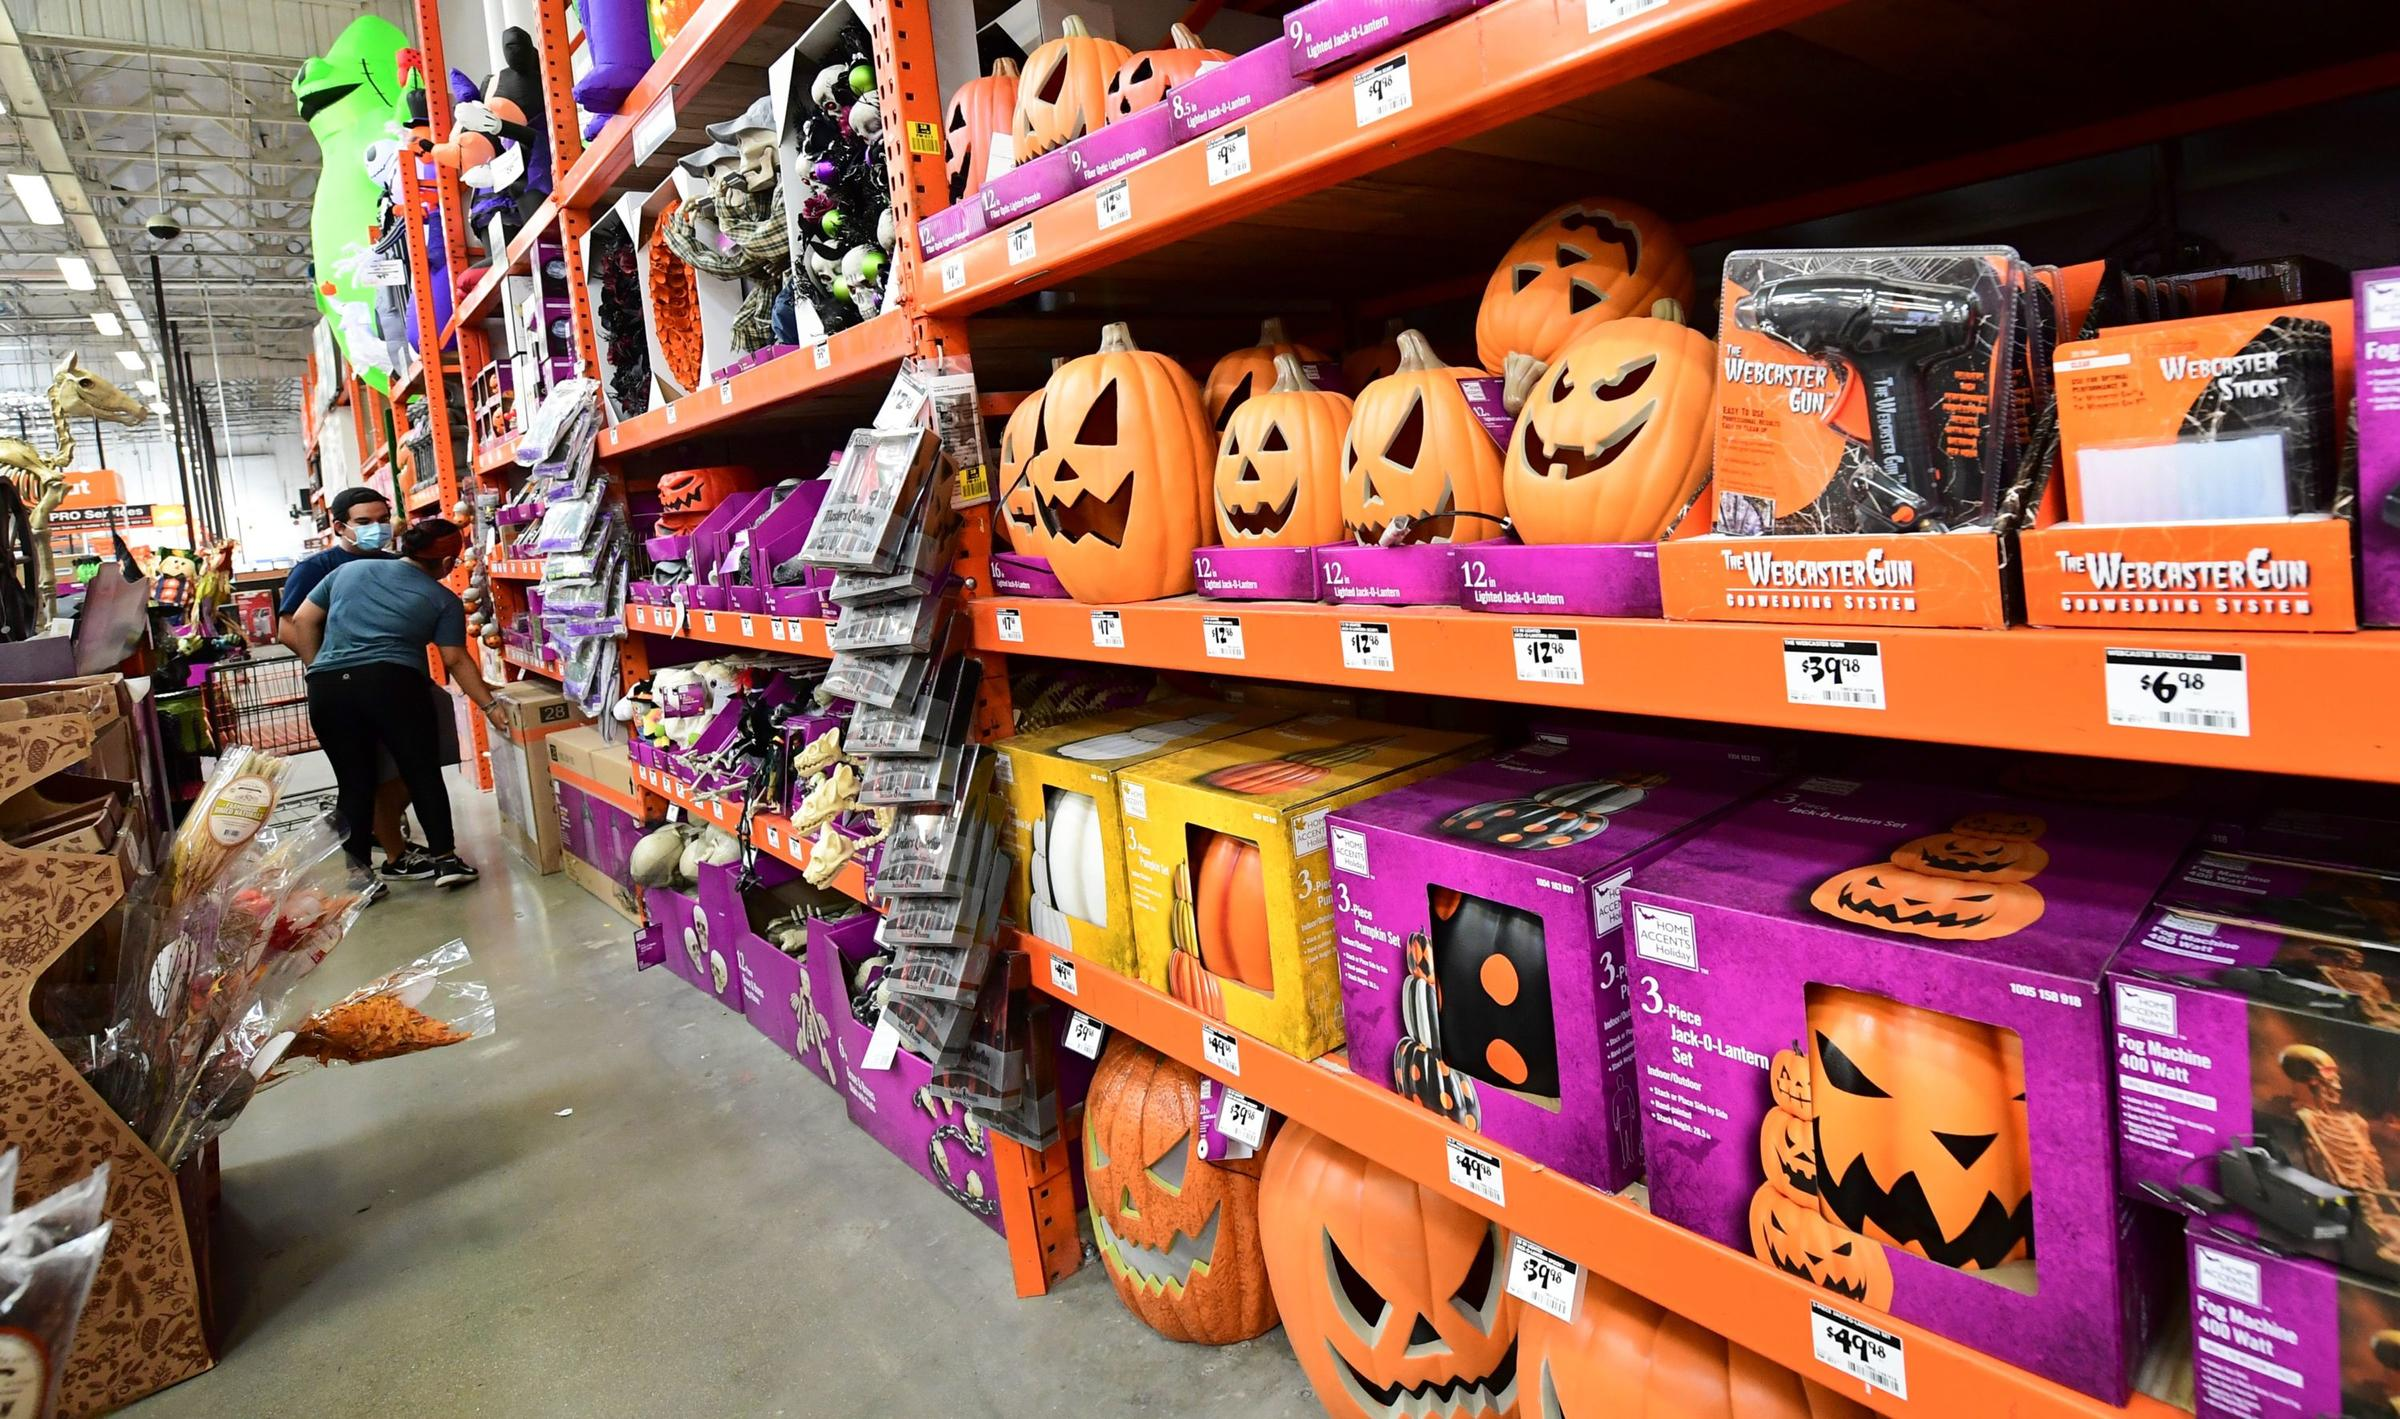 Npr Halloween 2020 Halloween 2020: Tips To Stay Safe But Have Fun | NPR Illinois